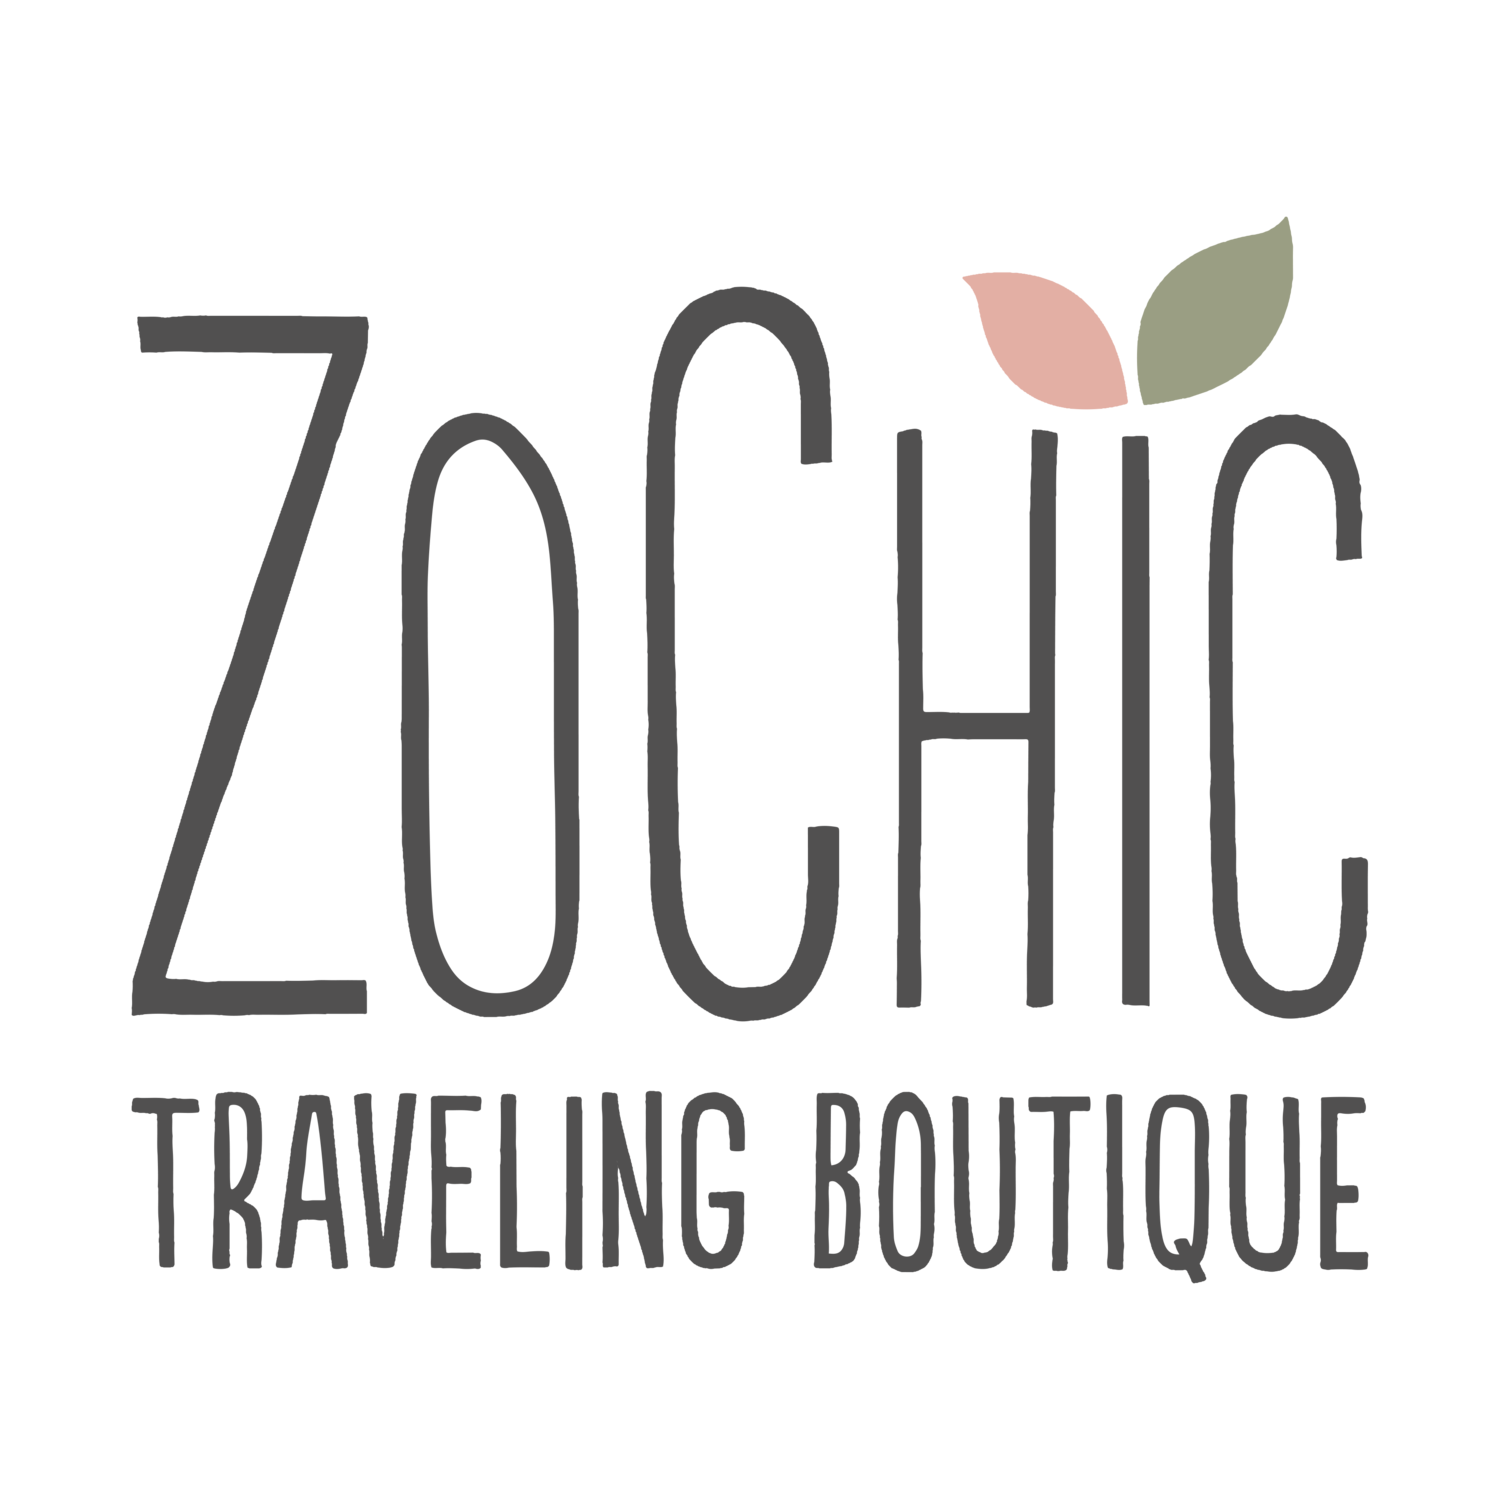 ZoChic Traveling Boutique - Zimmerman MN